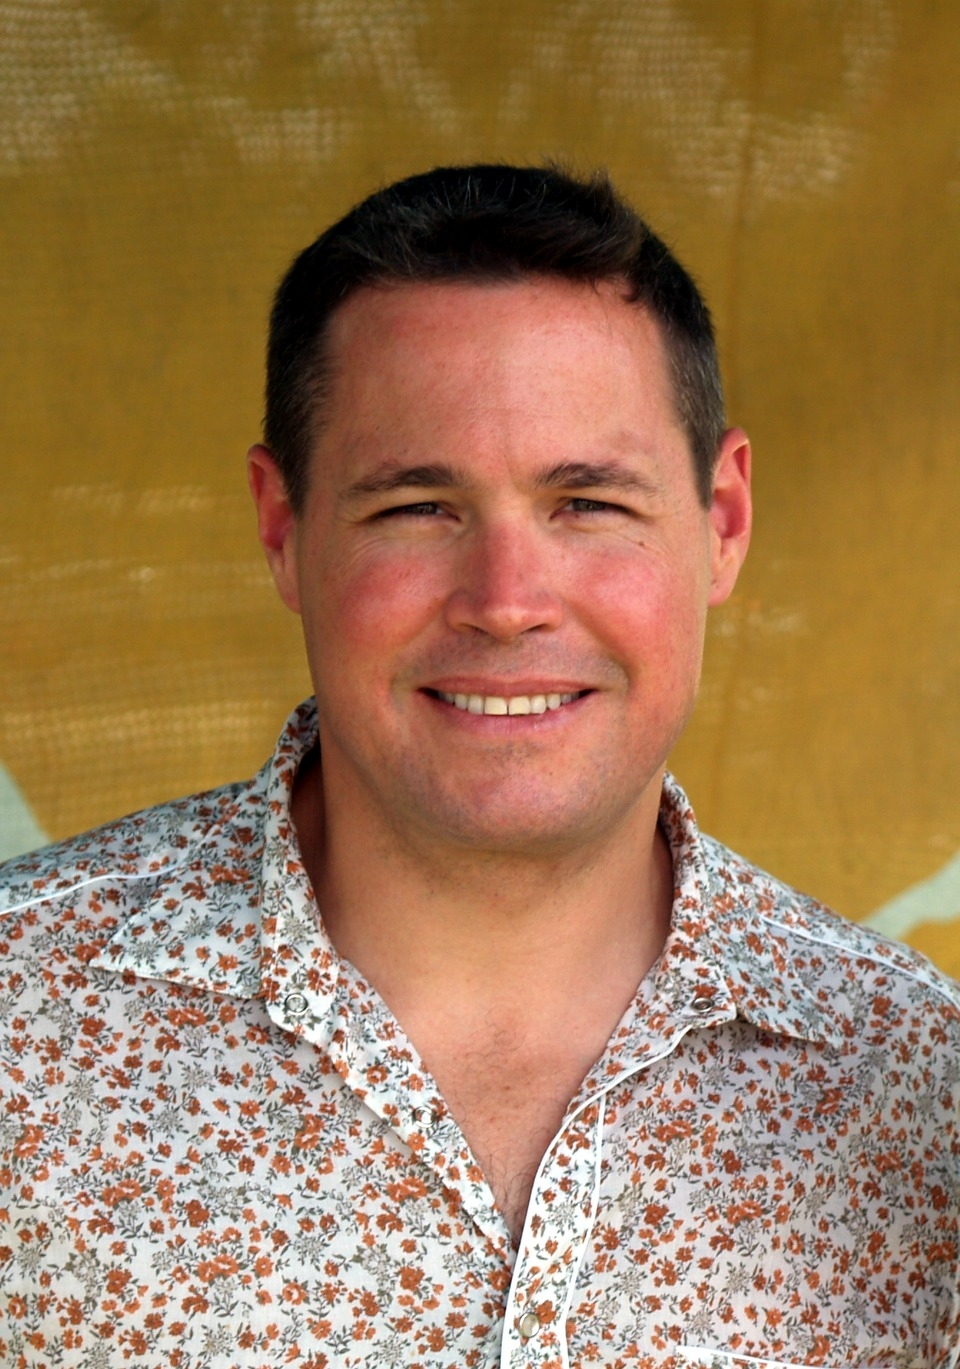 Jeff Corwin Net Worth